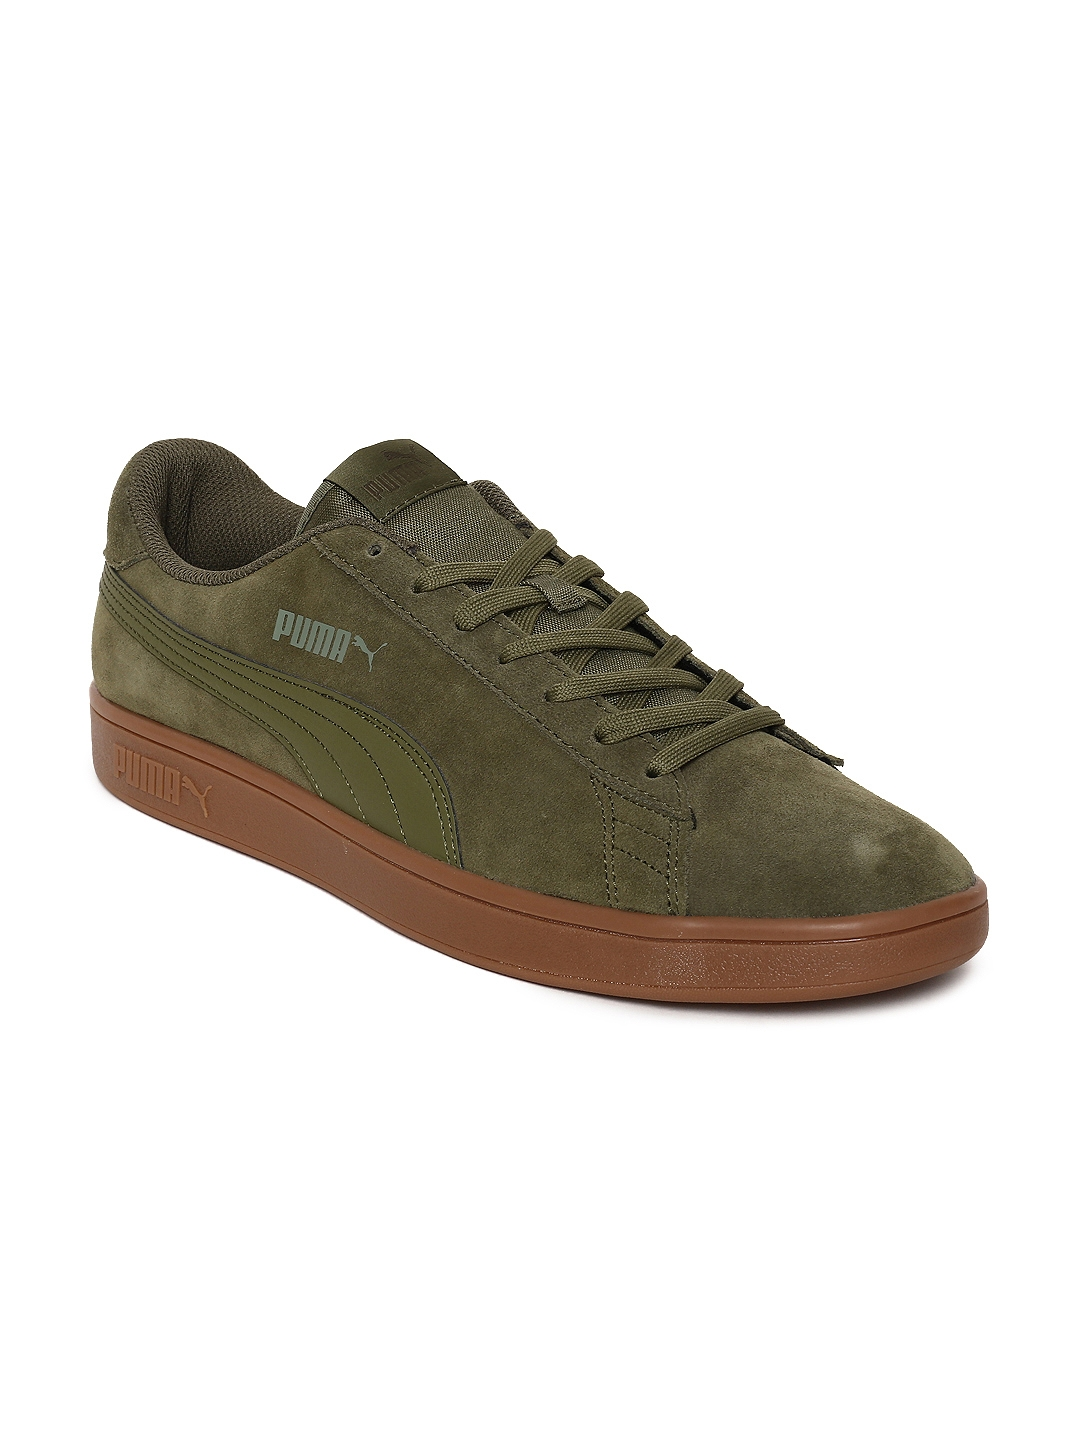 Buy Puma Men Olive Green Smash V2 Suede Sneakers - Casual Shoes for ... cb182847d